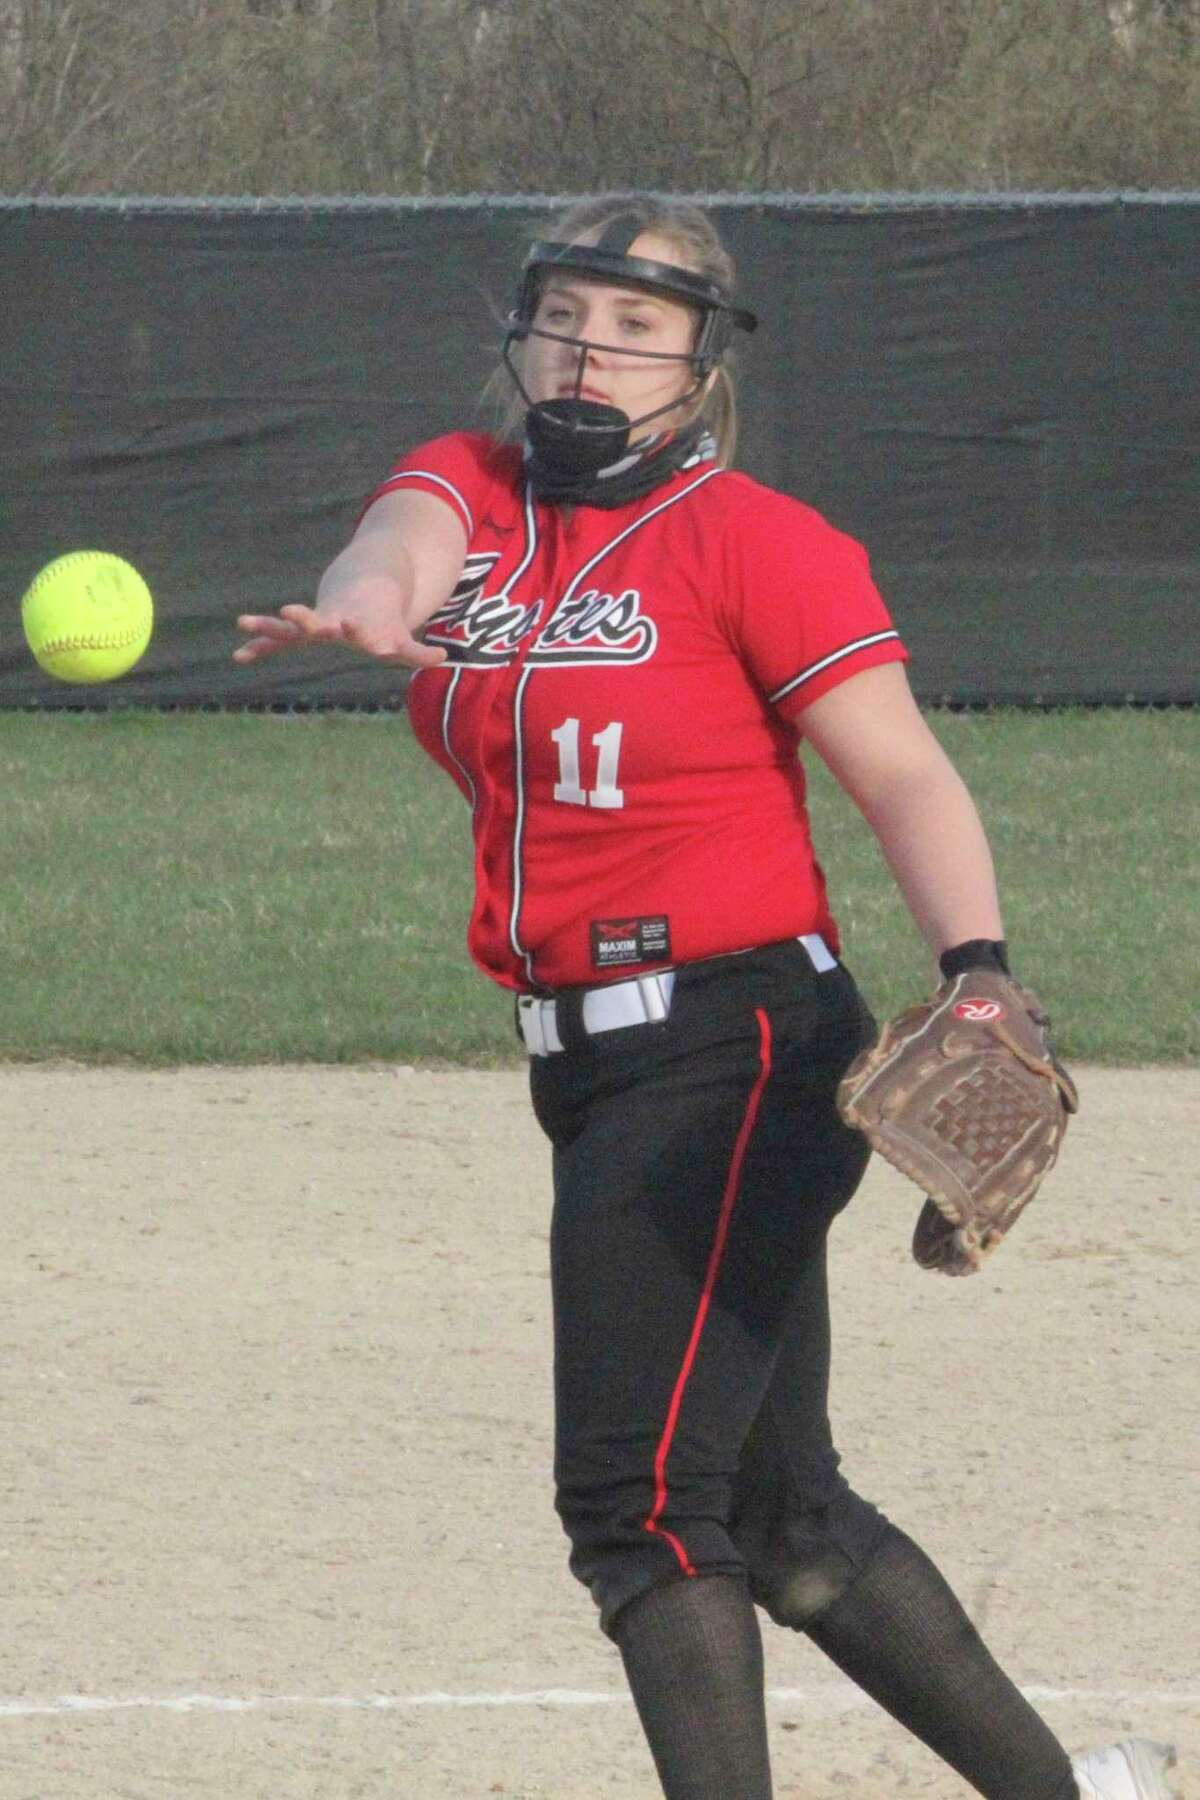 Riley Shafer is among the Reed City girls playing travel softball. (Pioneer file photo)